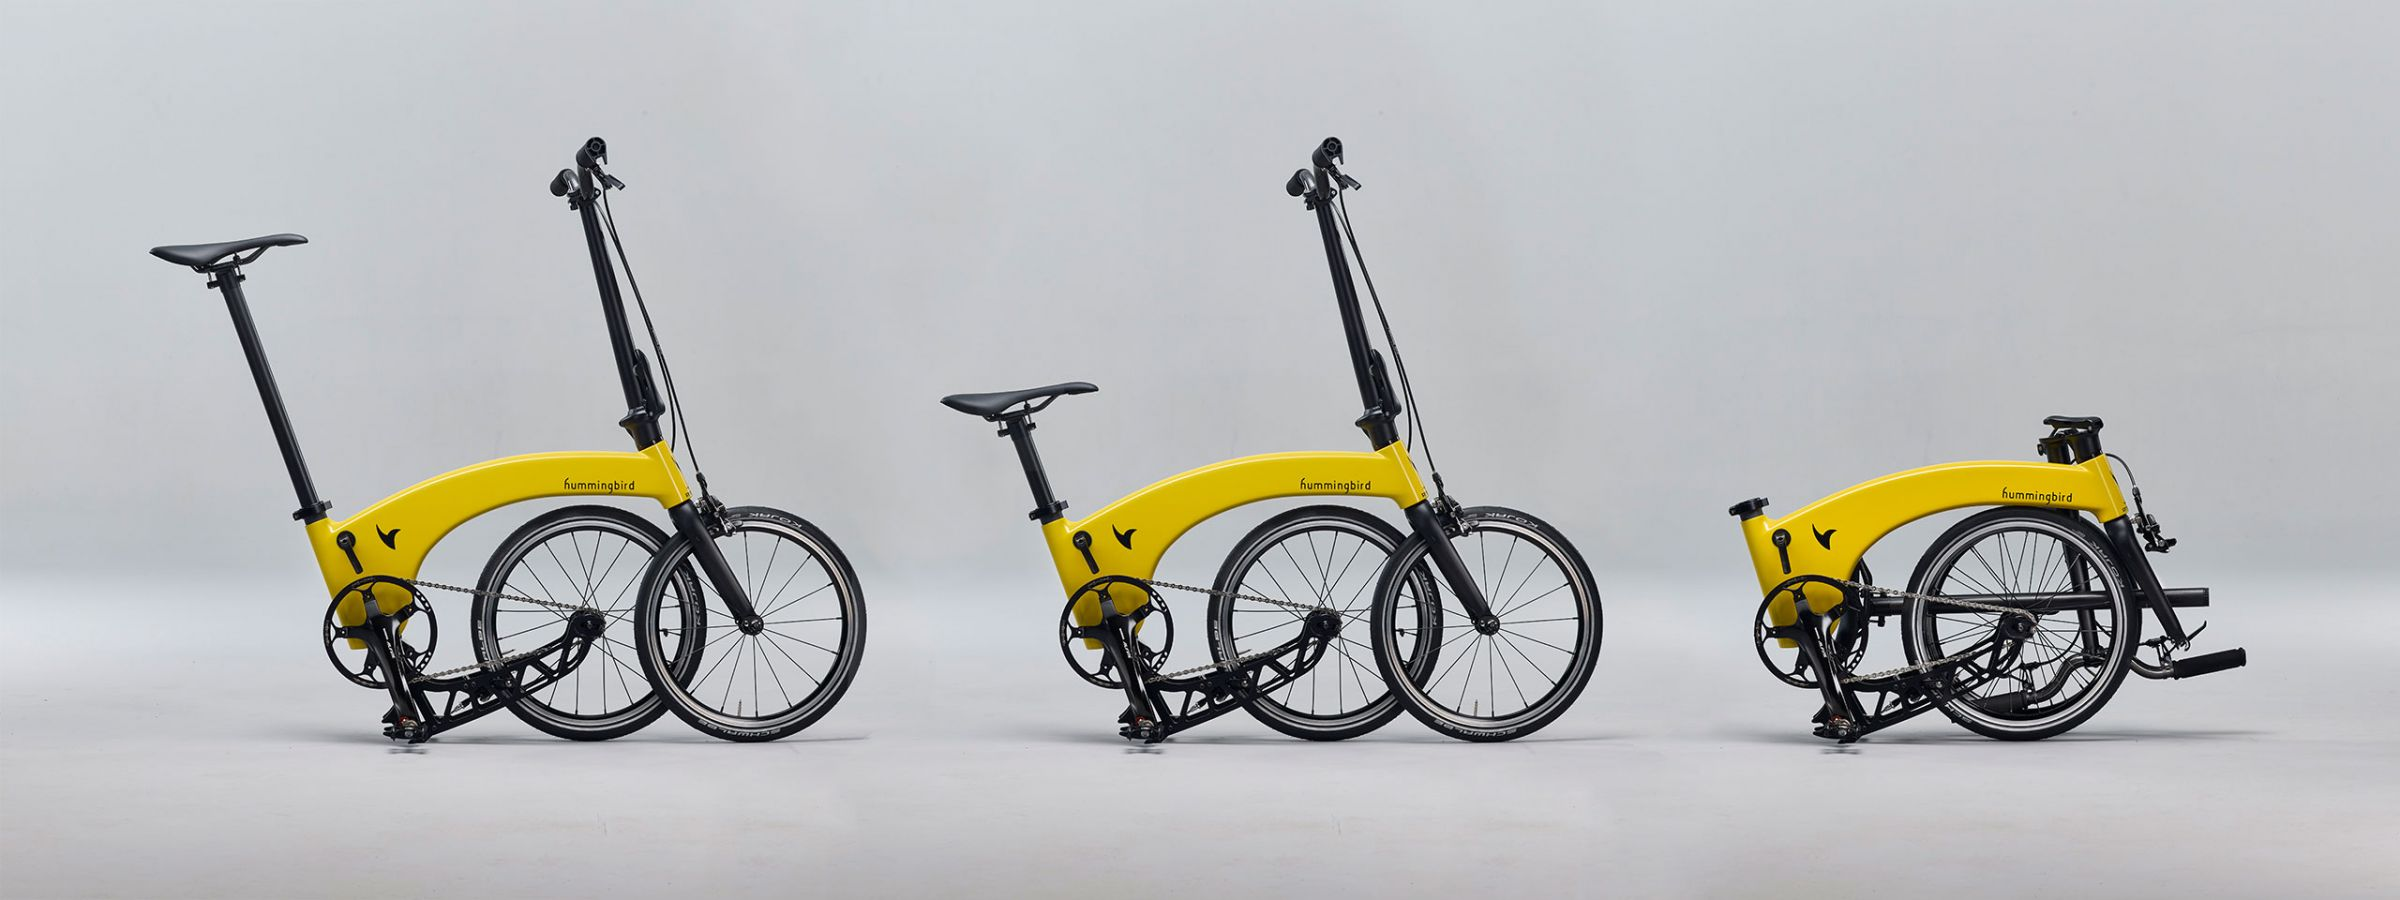 A Lighter Way Of Breathing New Life Into Urban Cycling